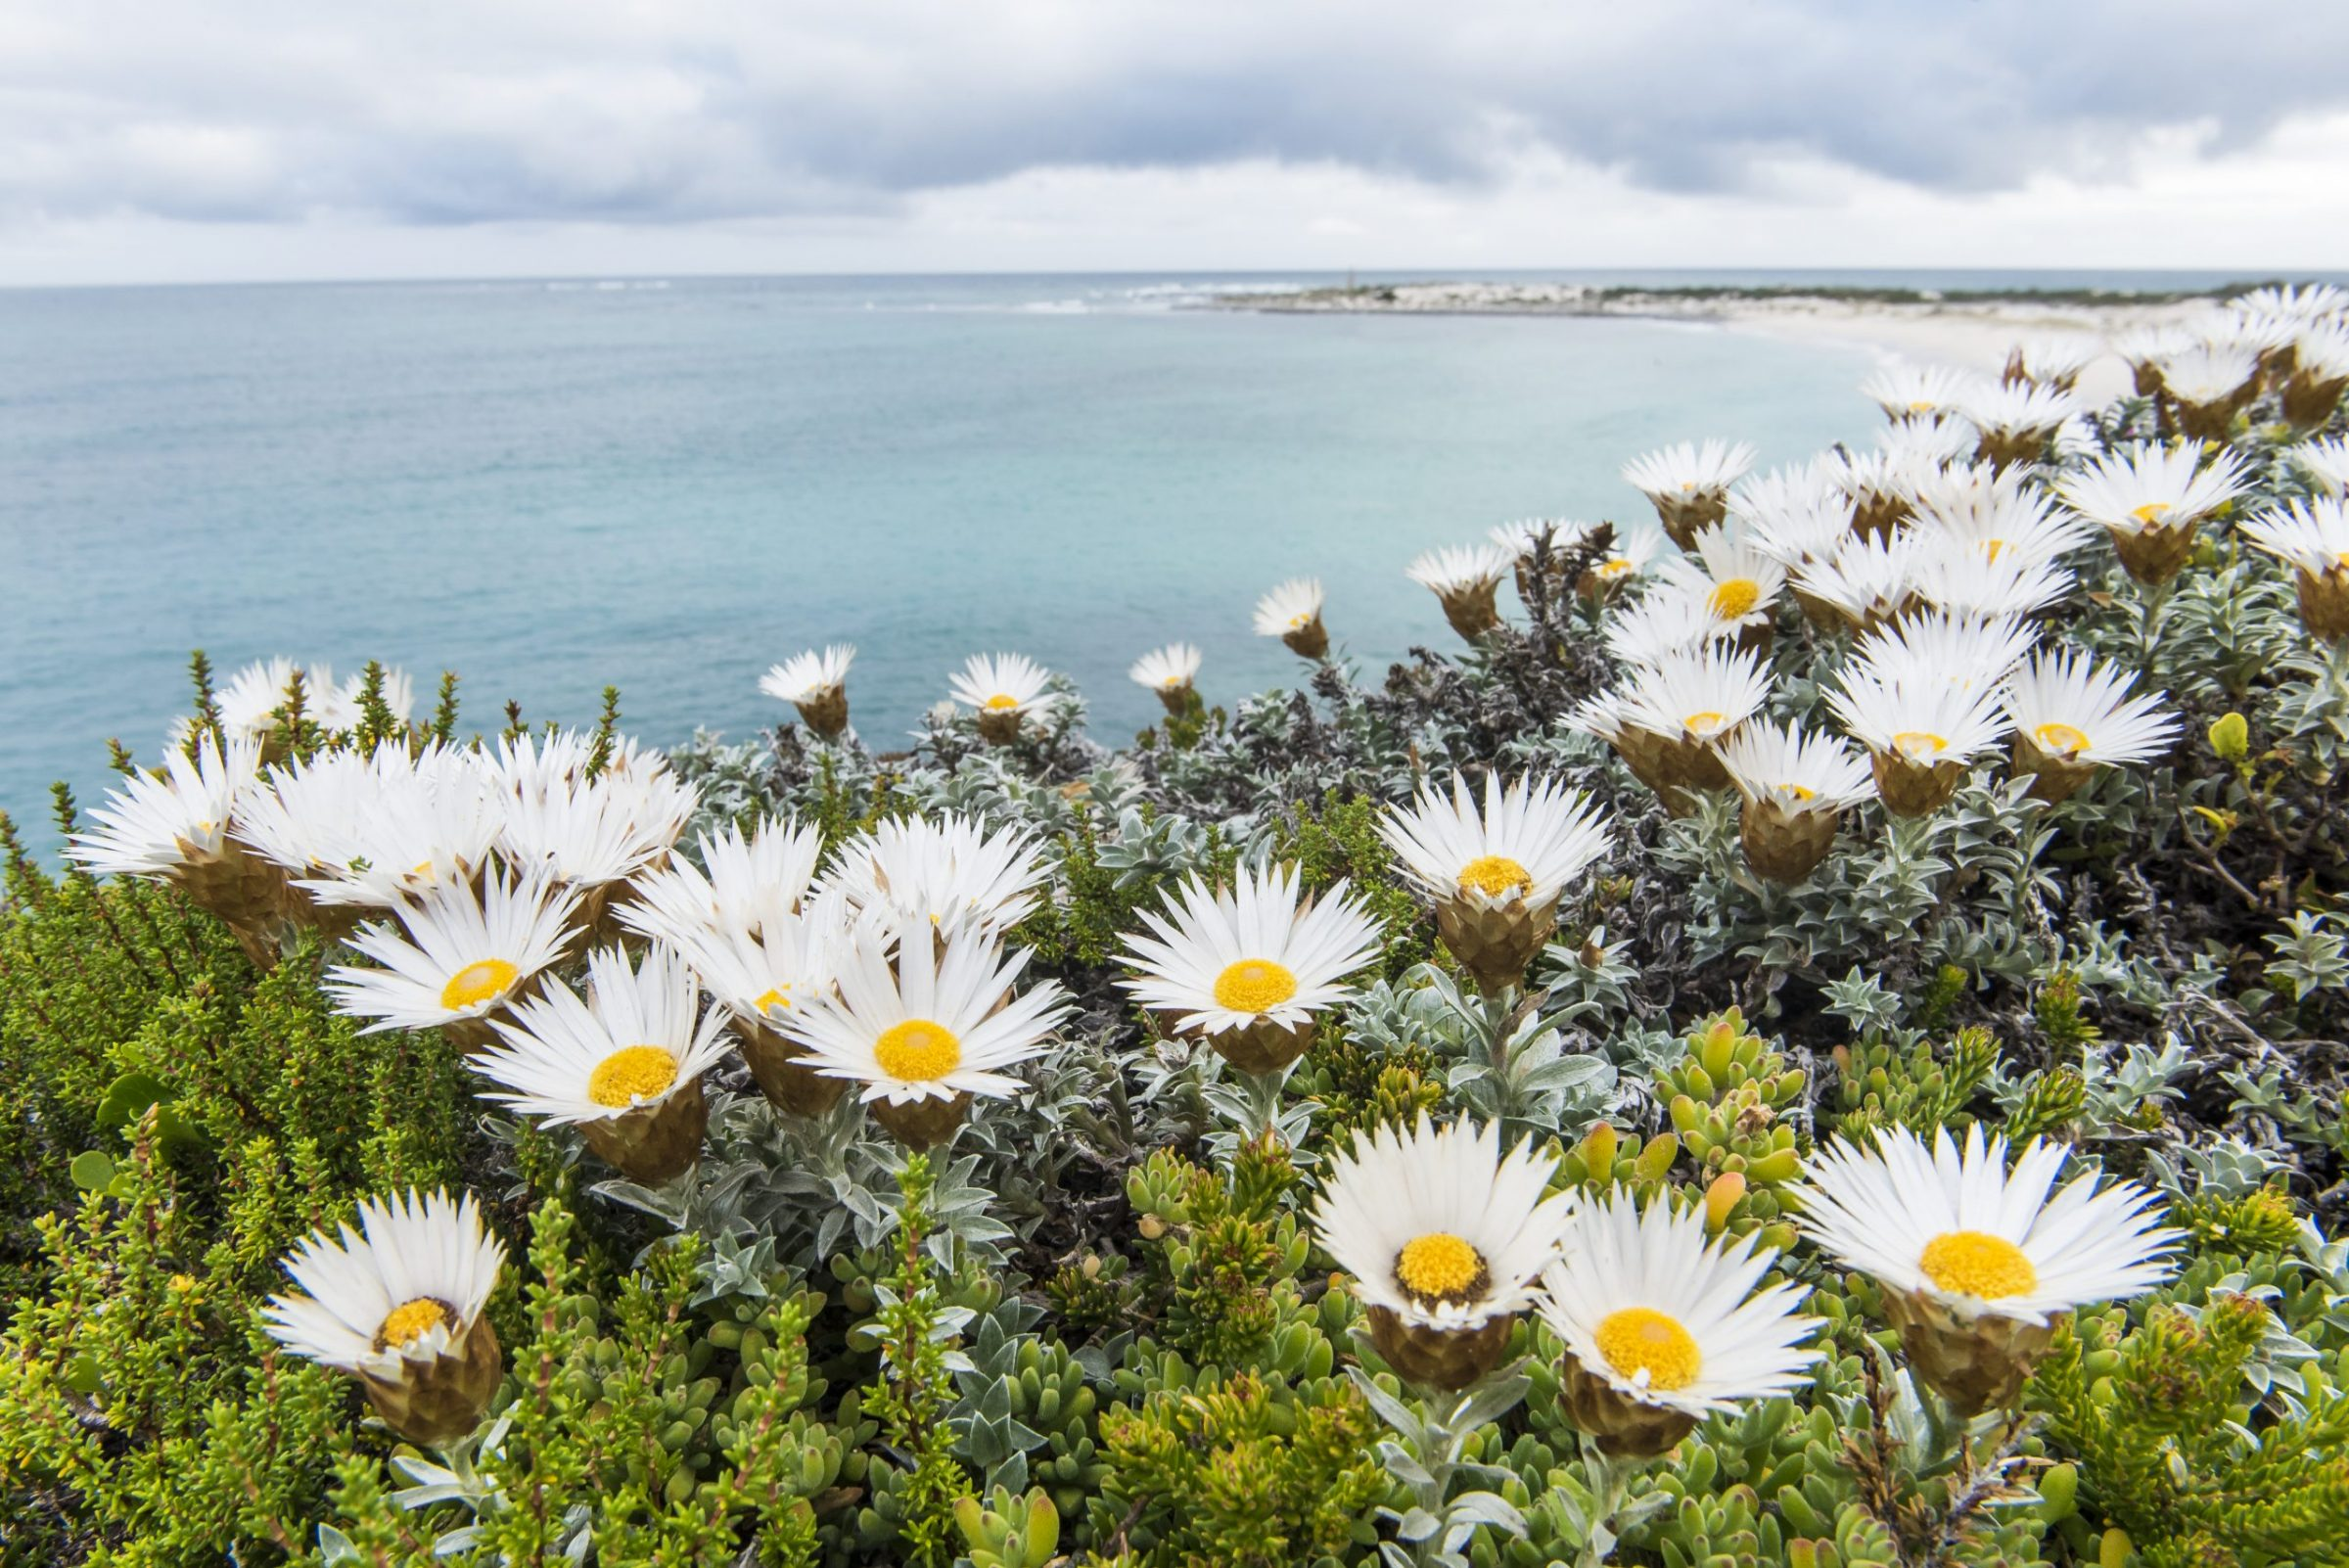 Sea strawflower blooms along the coast of South Africa.